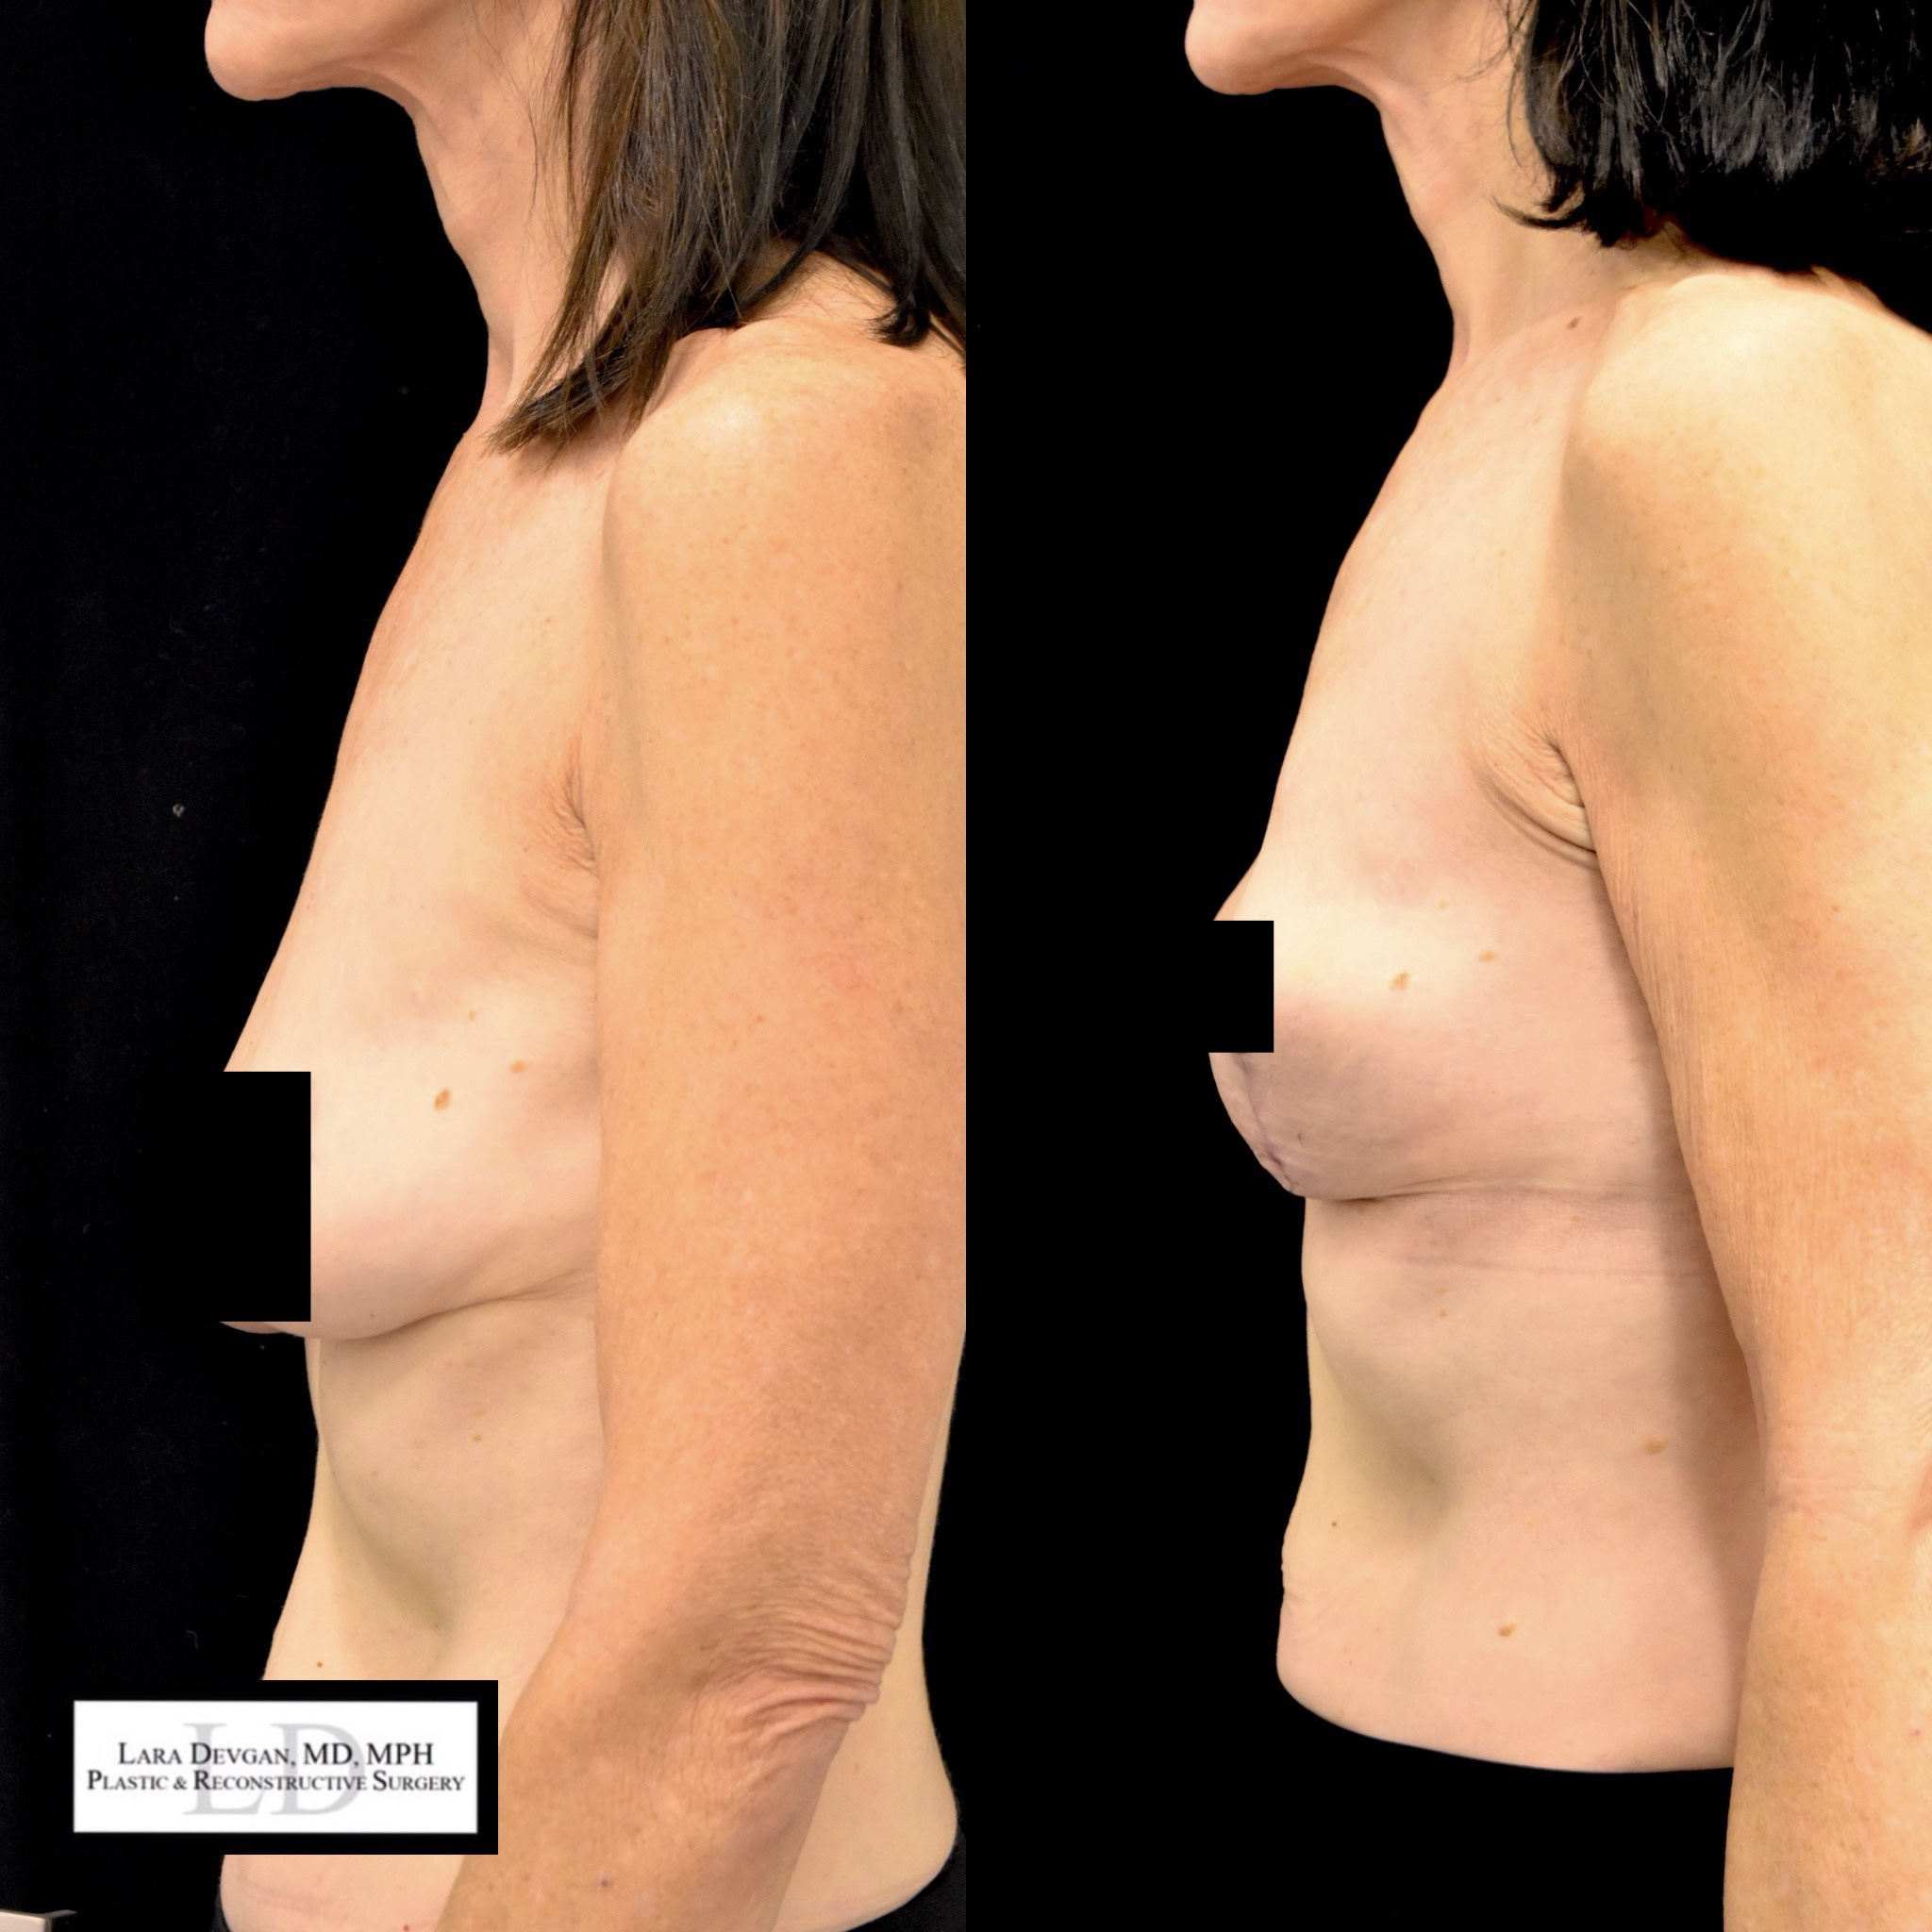 Actual patient of Dr. Devgan, who is in her 60s, before and 6 weeks after breast lift (mastopexy). Scars are immature and will fade to nearly invisible by 1 year.